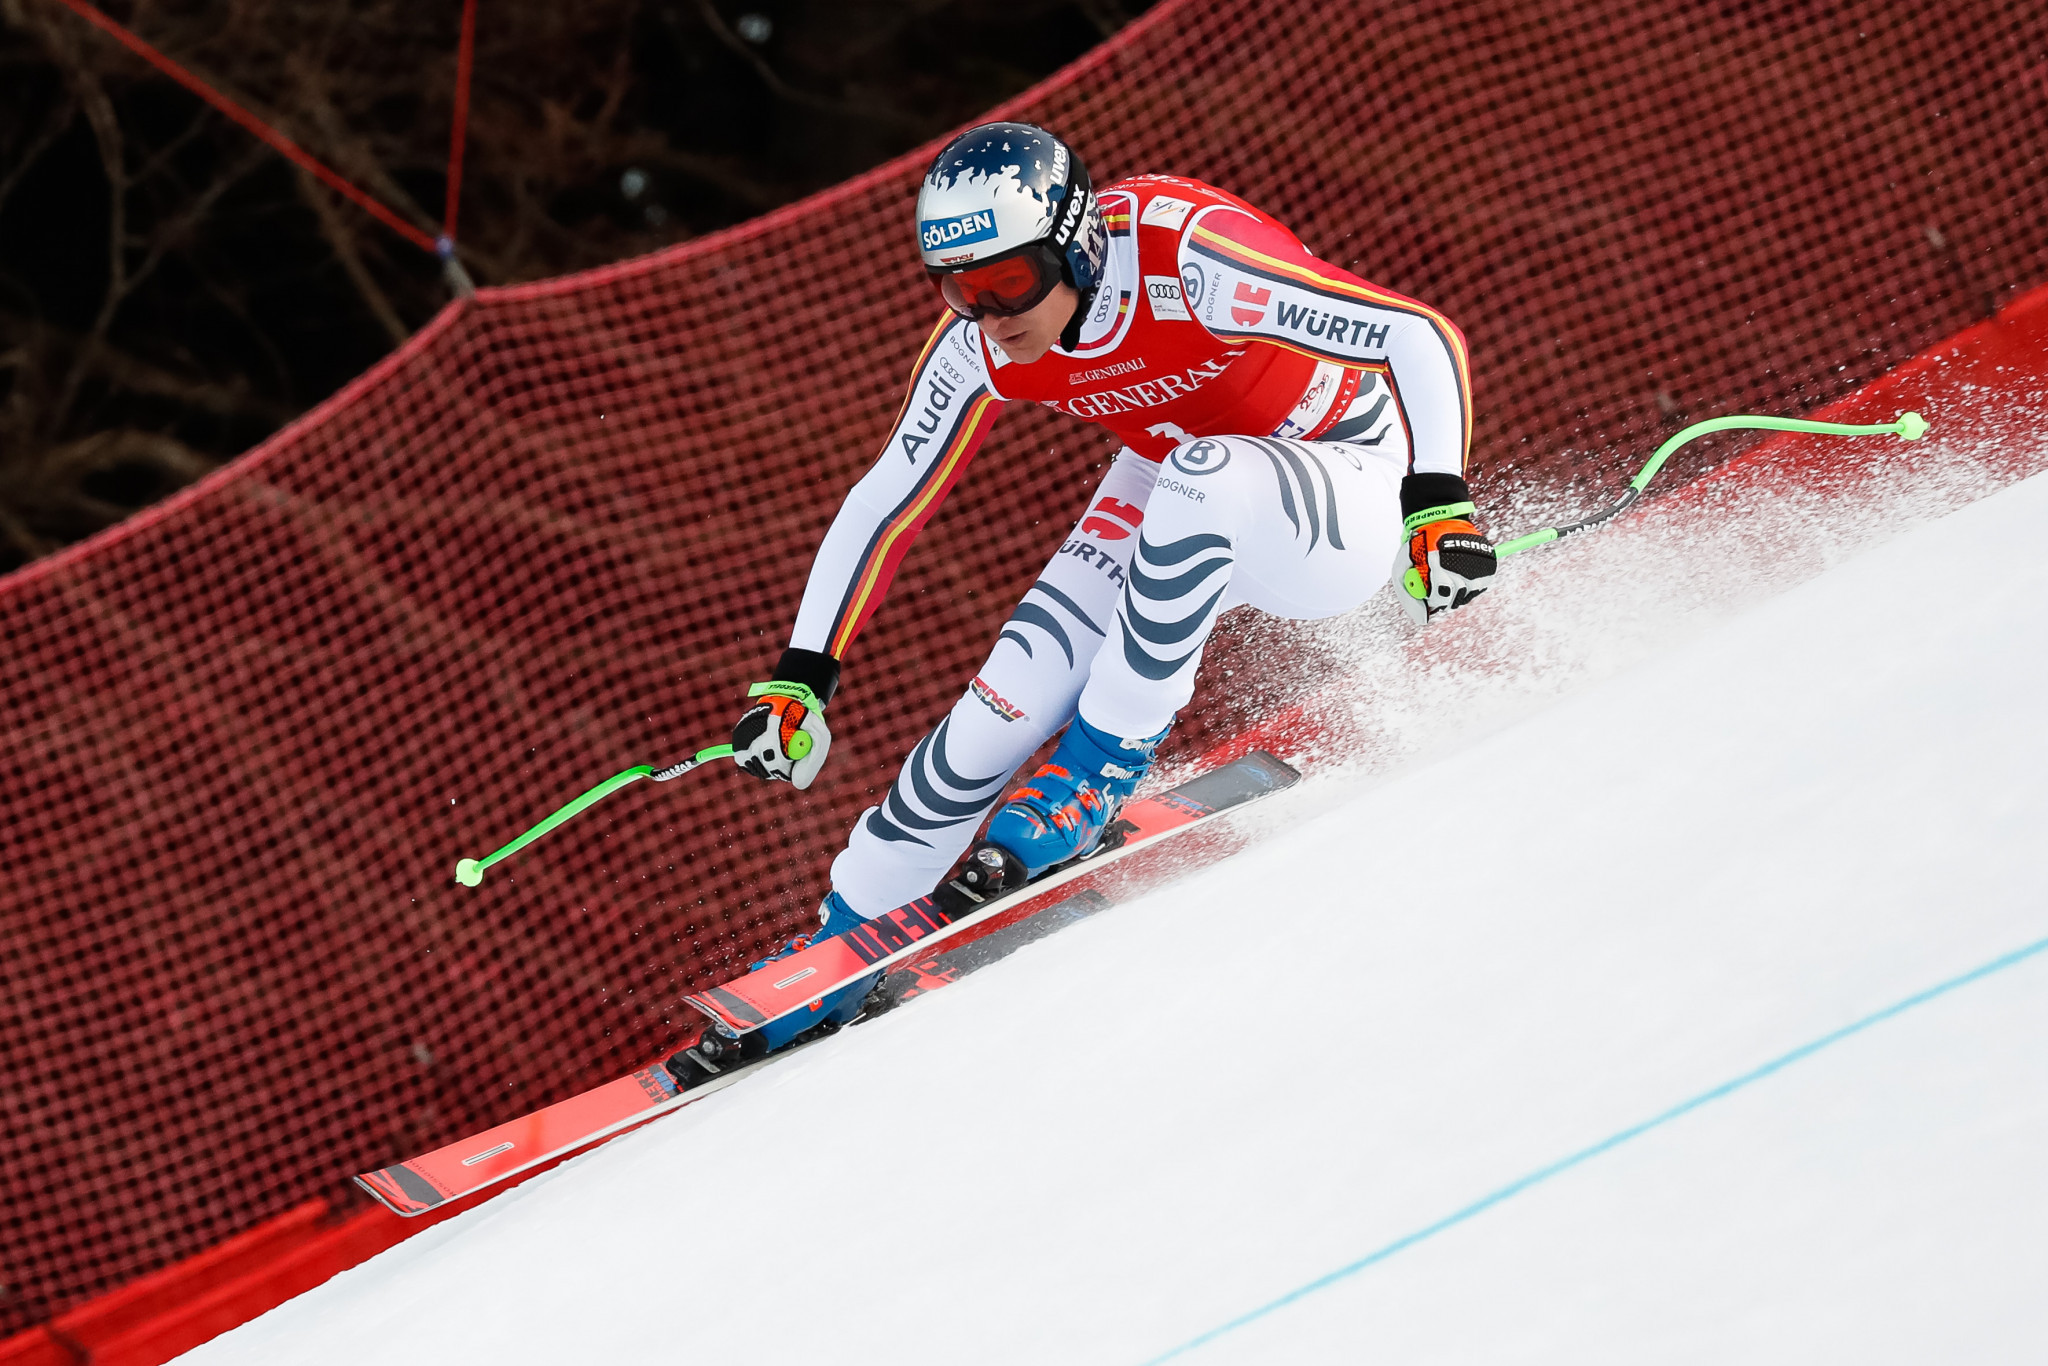 Dressen ends German drought at FIS Alpine Skiing World Cup in Garmisch-Partenkirchen